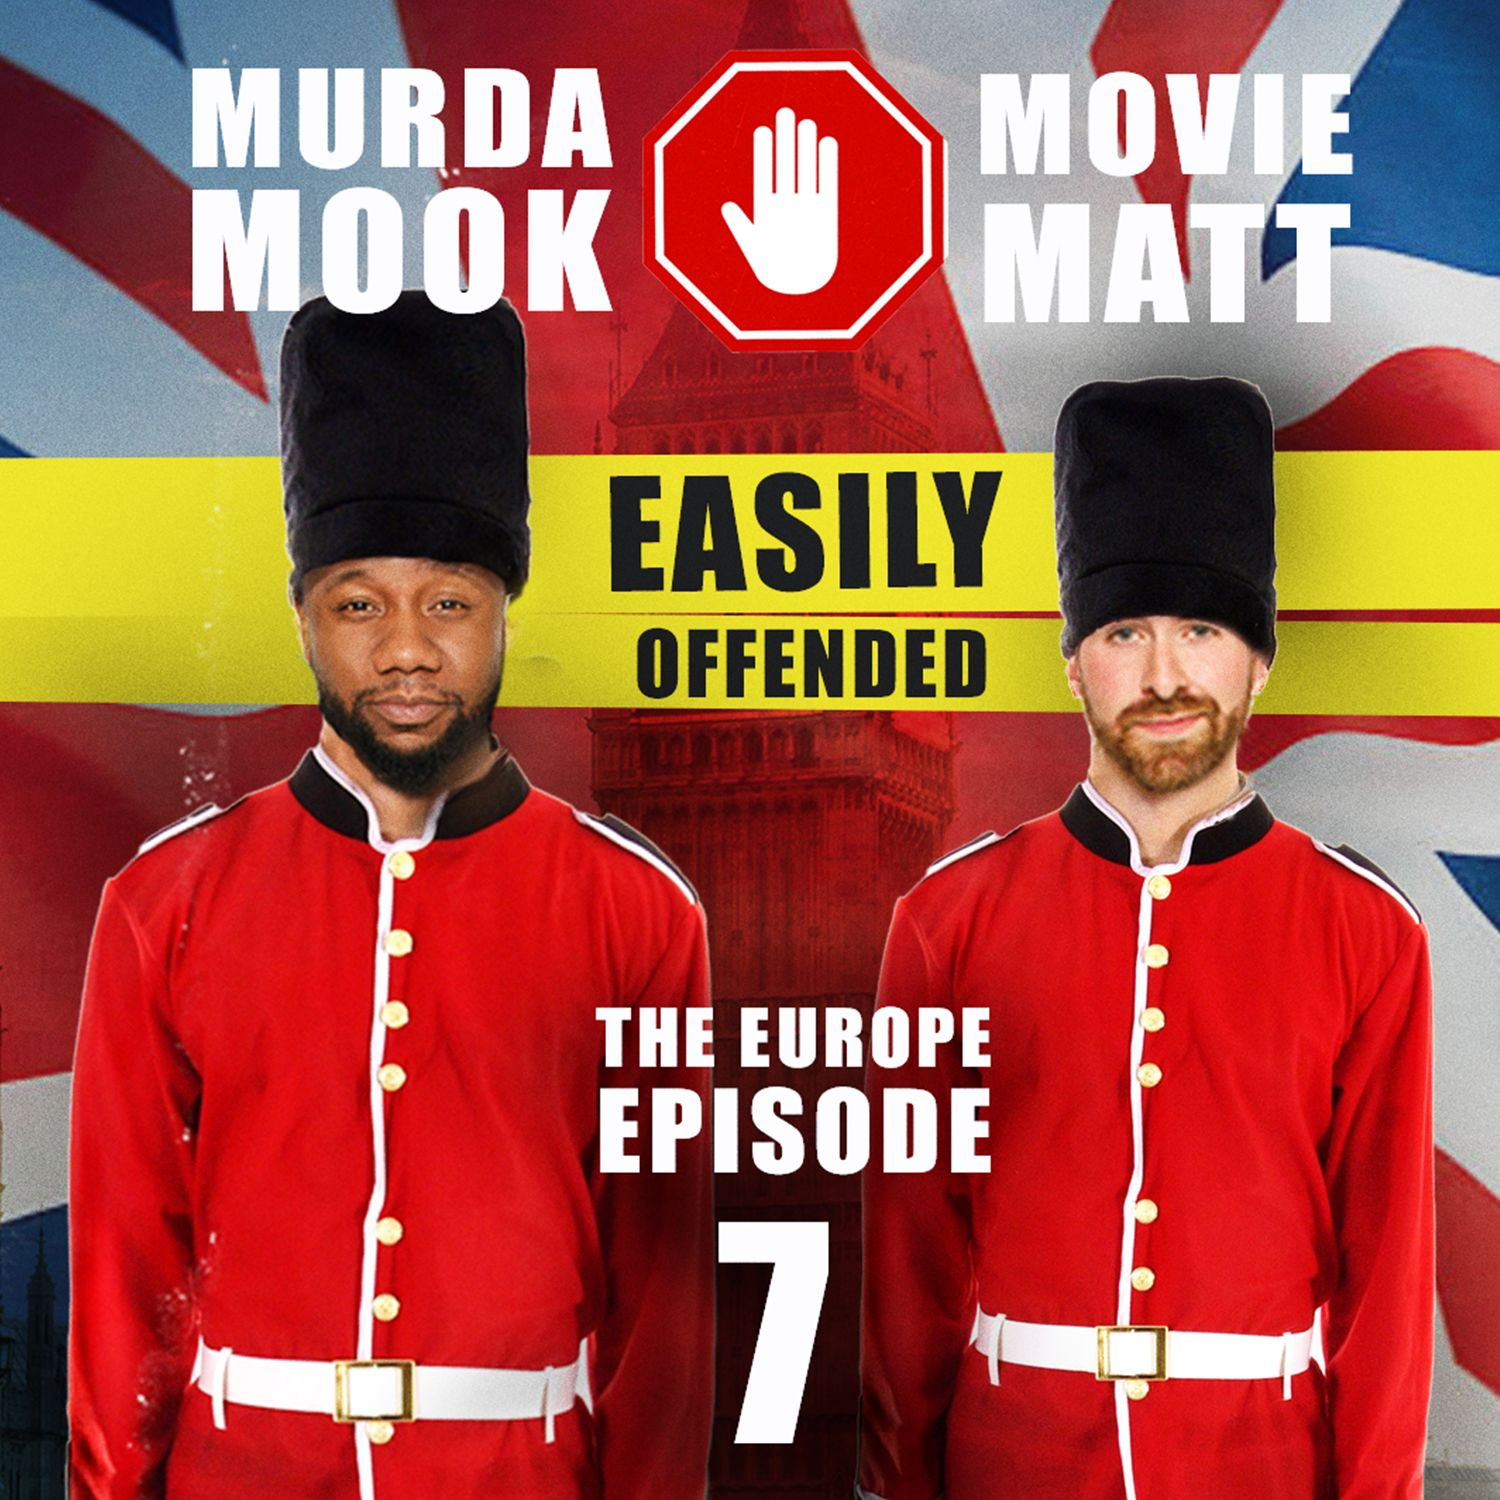 Ep. 7 - Mook & Matt visit the UK & chat with locals about Trump, Oprah, H+M and more!